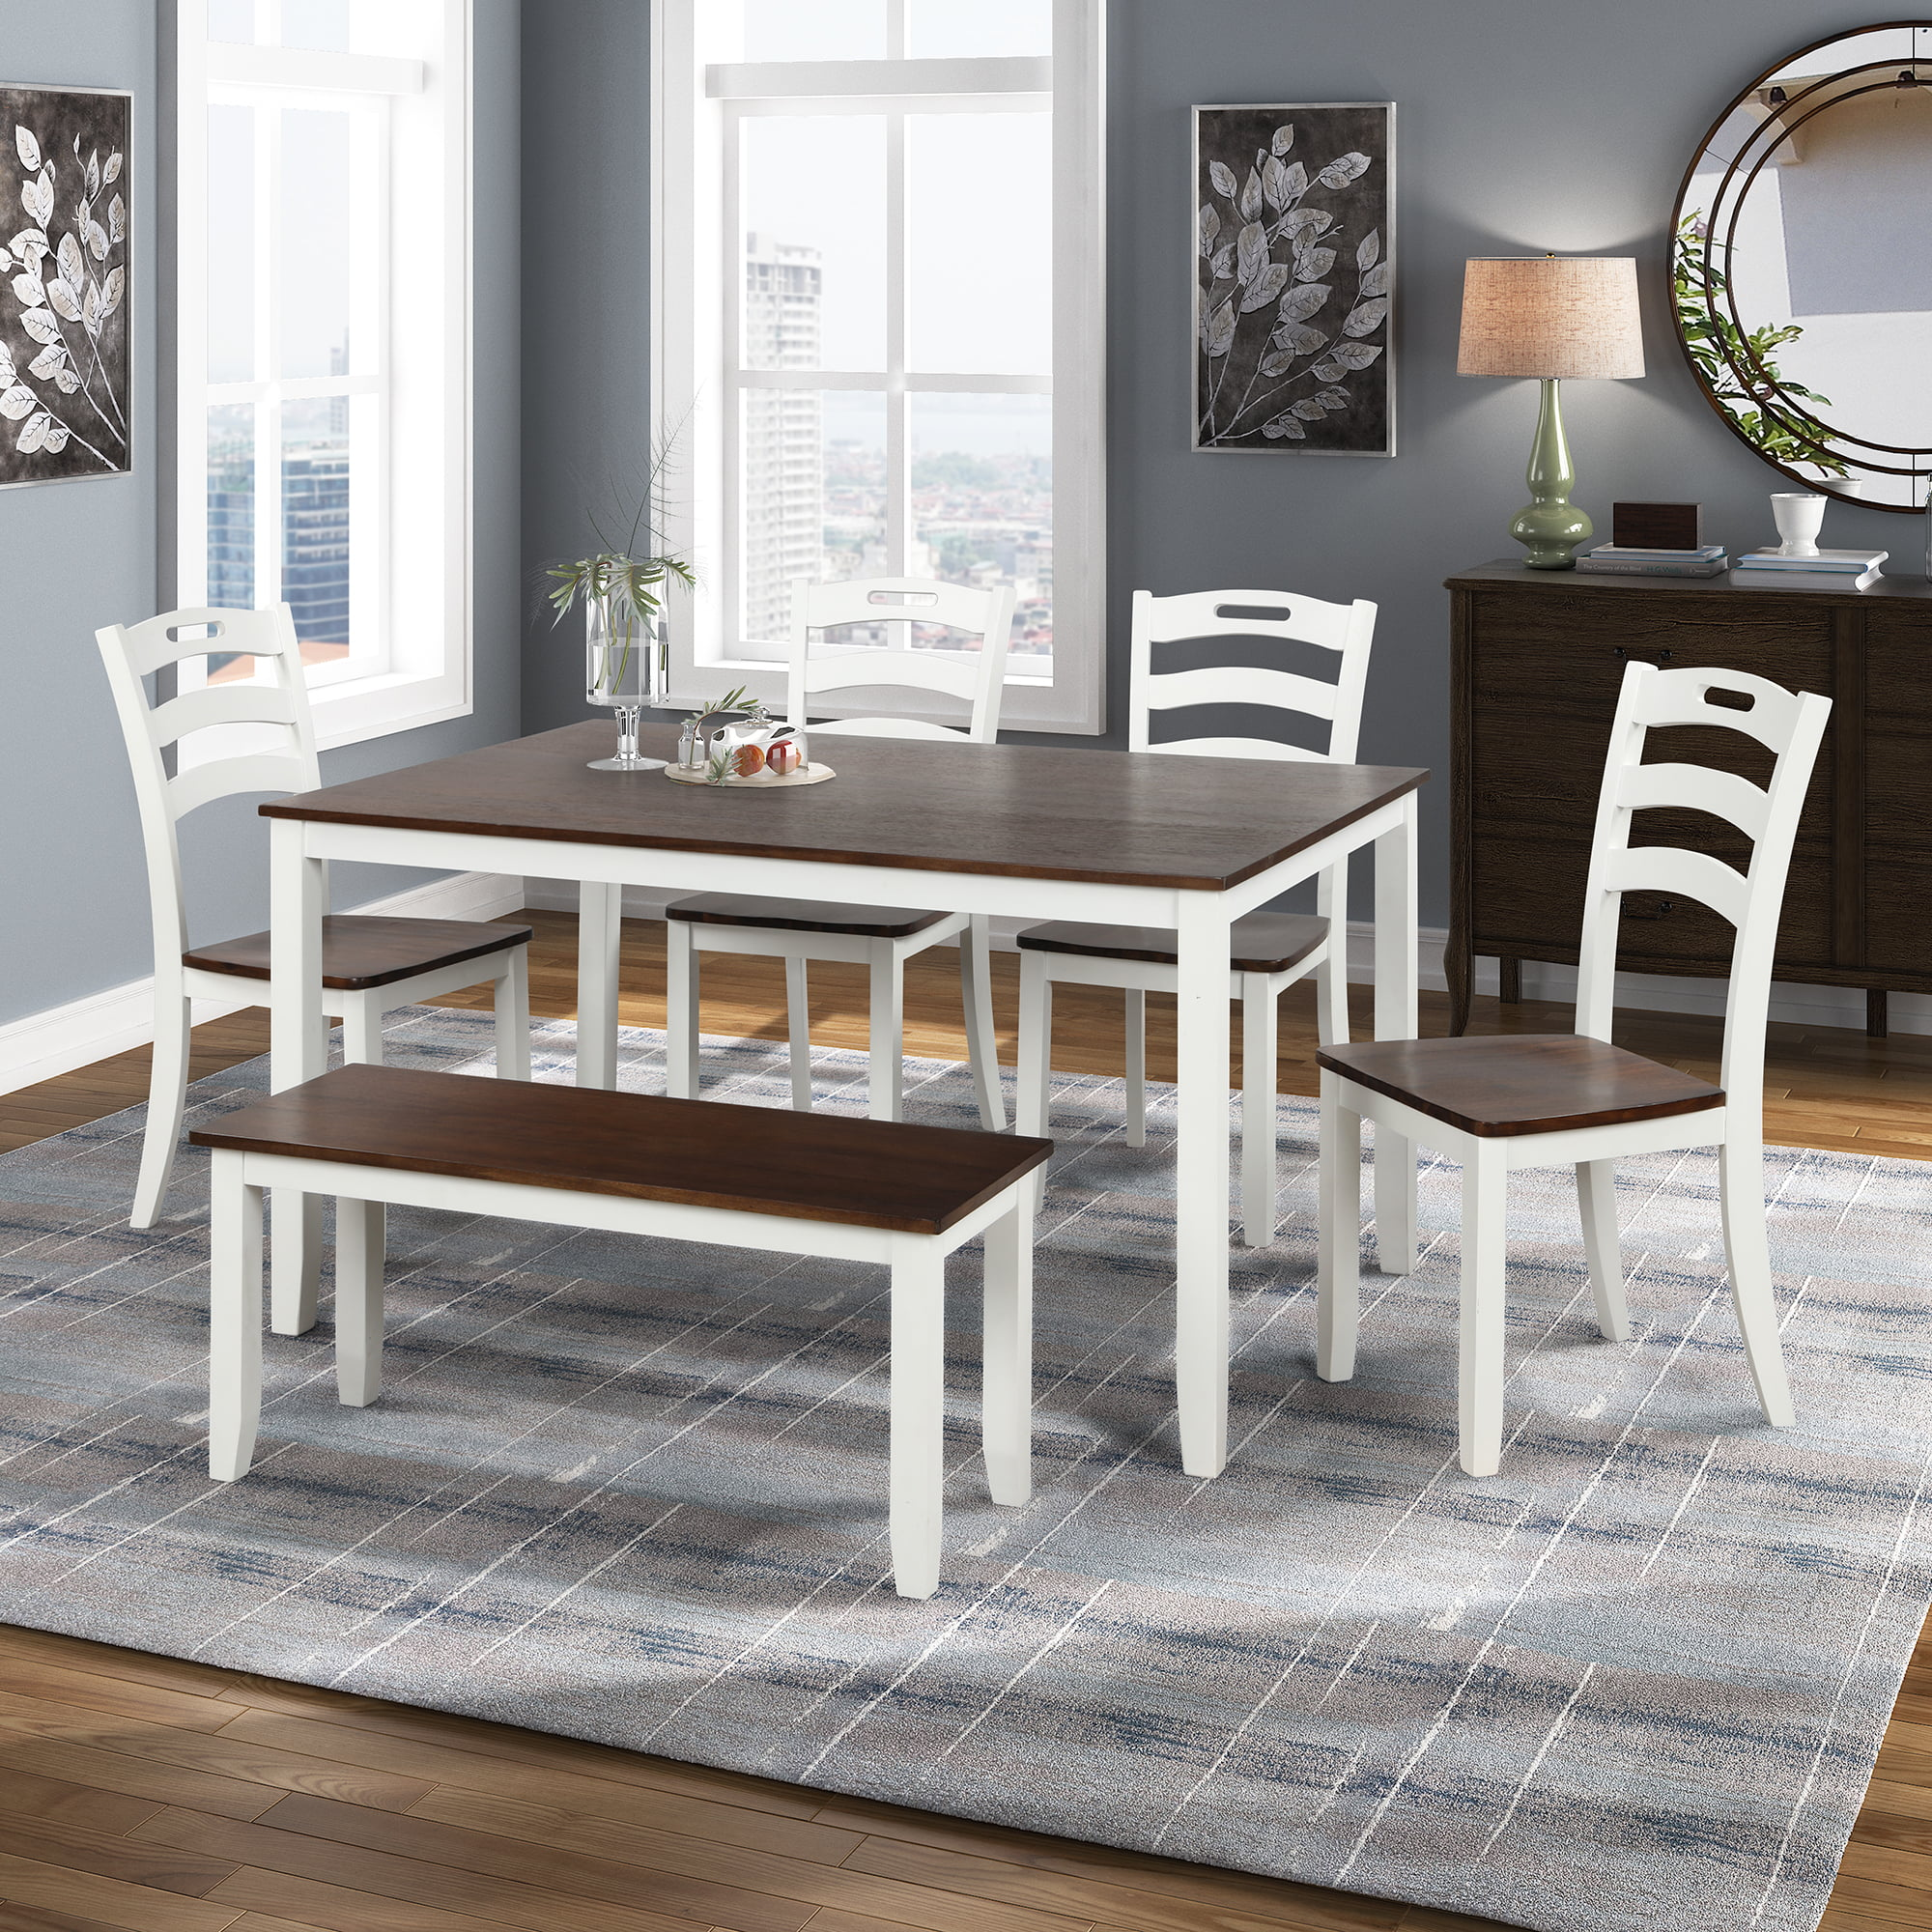 Farmhouse Dining Room Chairs Set Of 4, Farmhouse Dining Room Furniture Sets